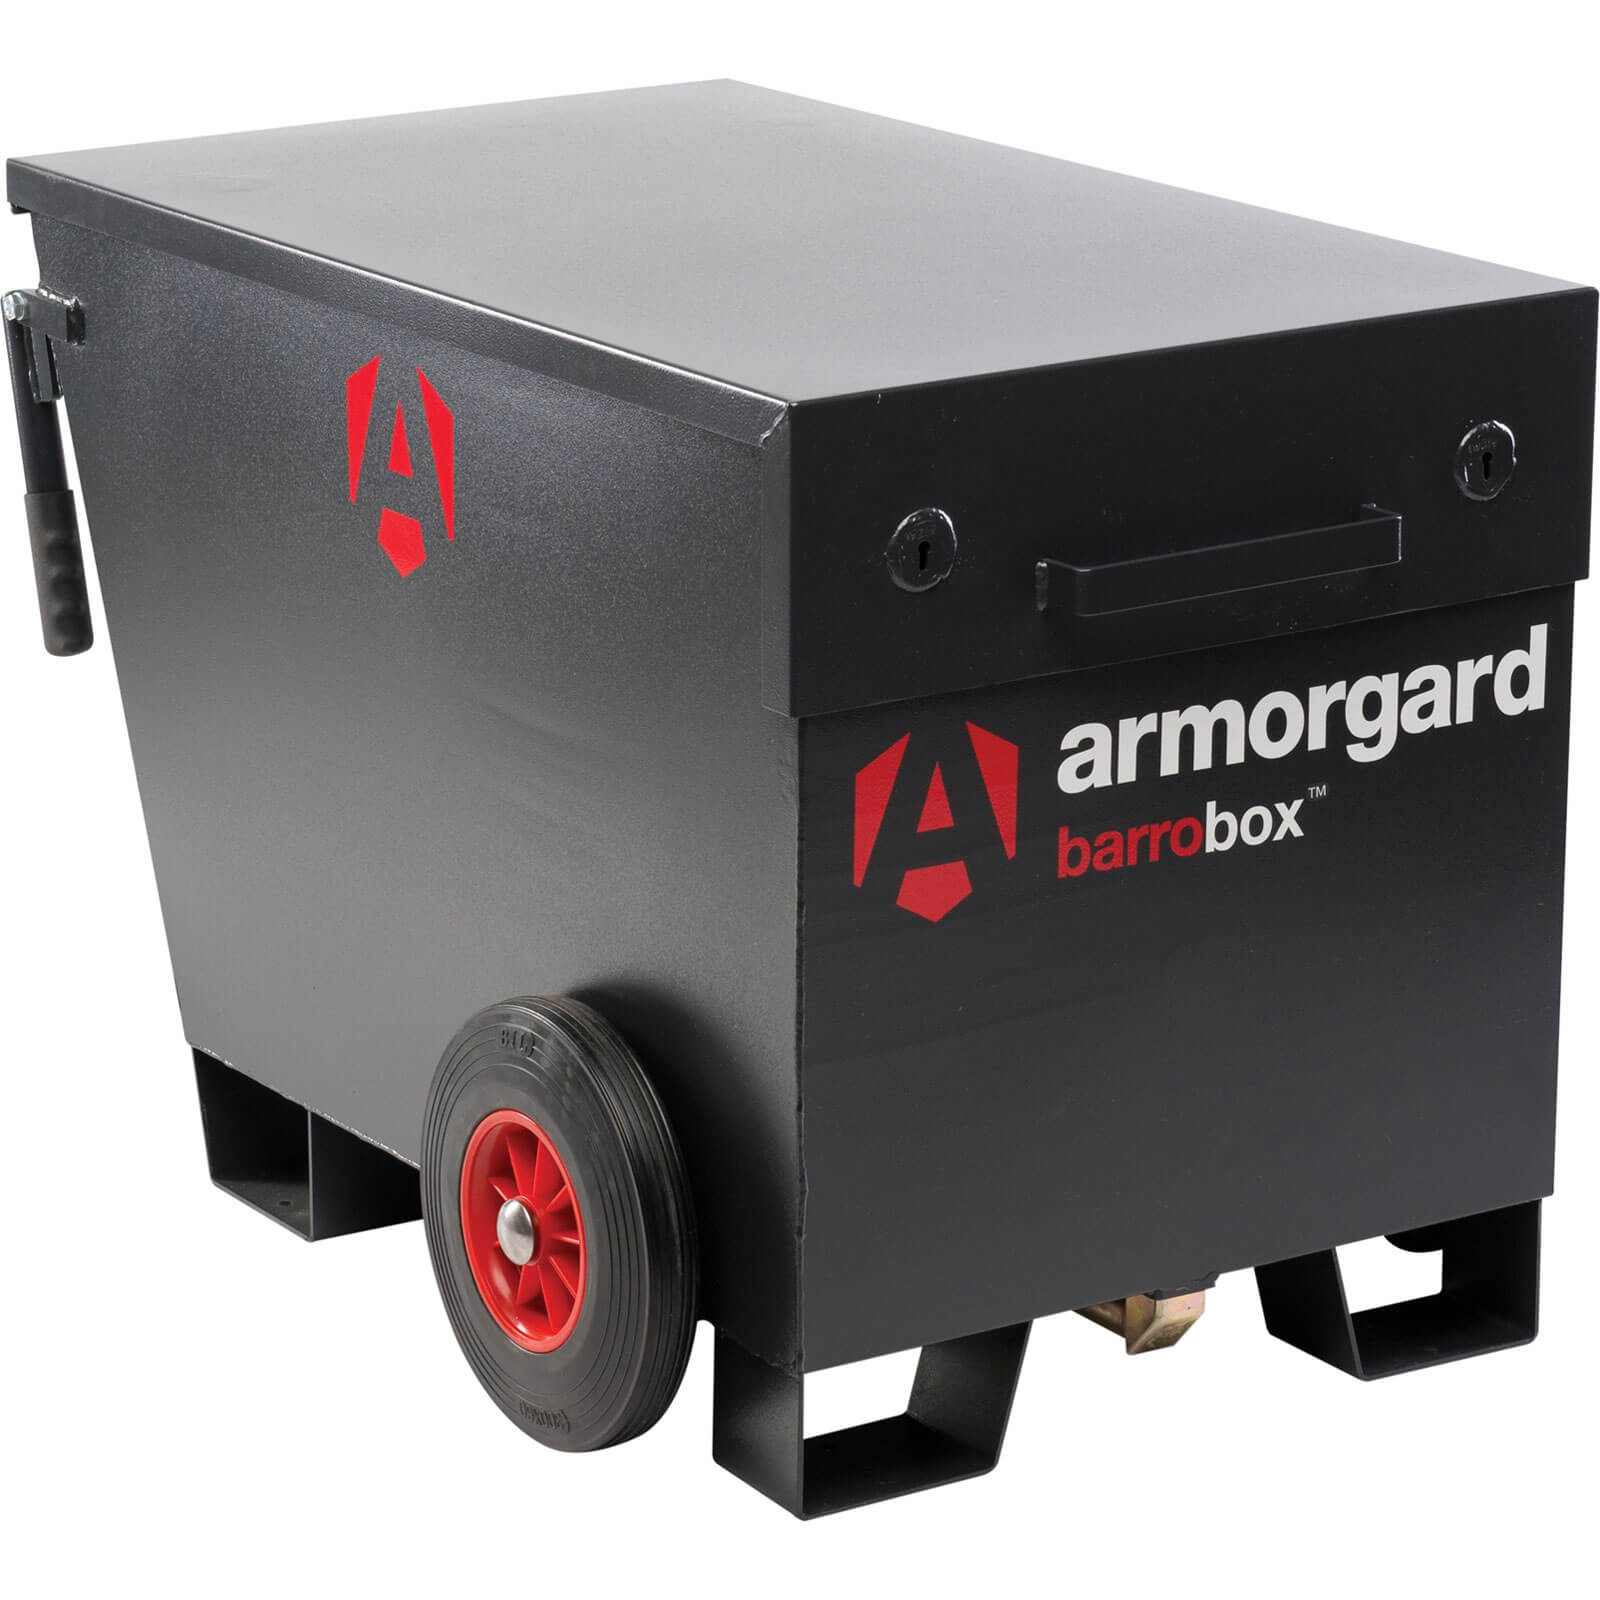 Armorgard Barrobox Mobile Site Security Tool Box